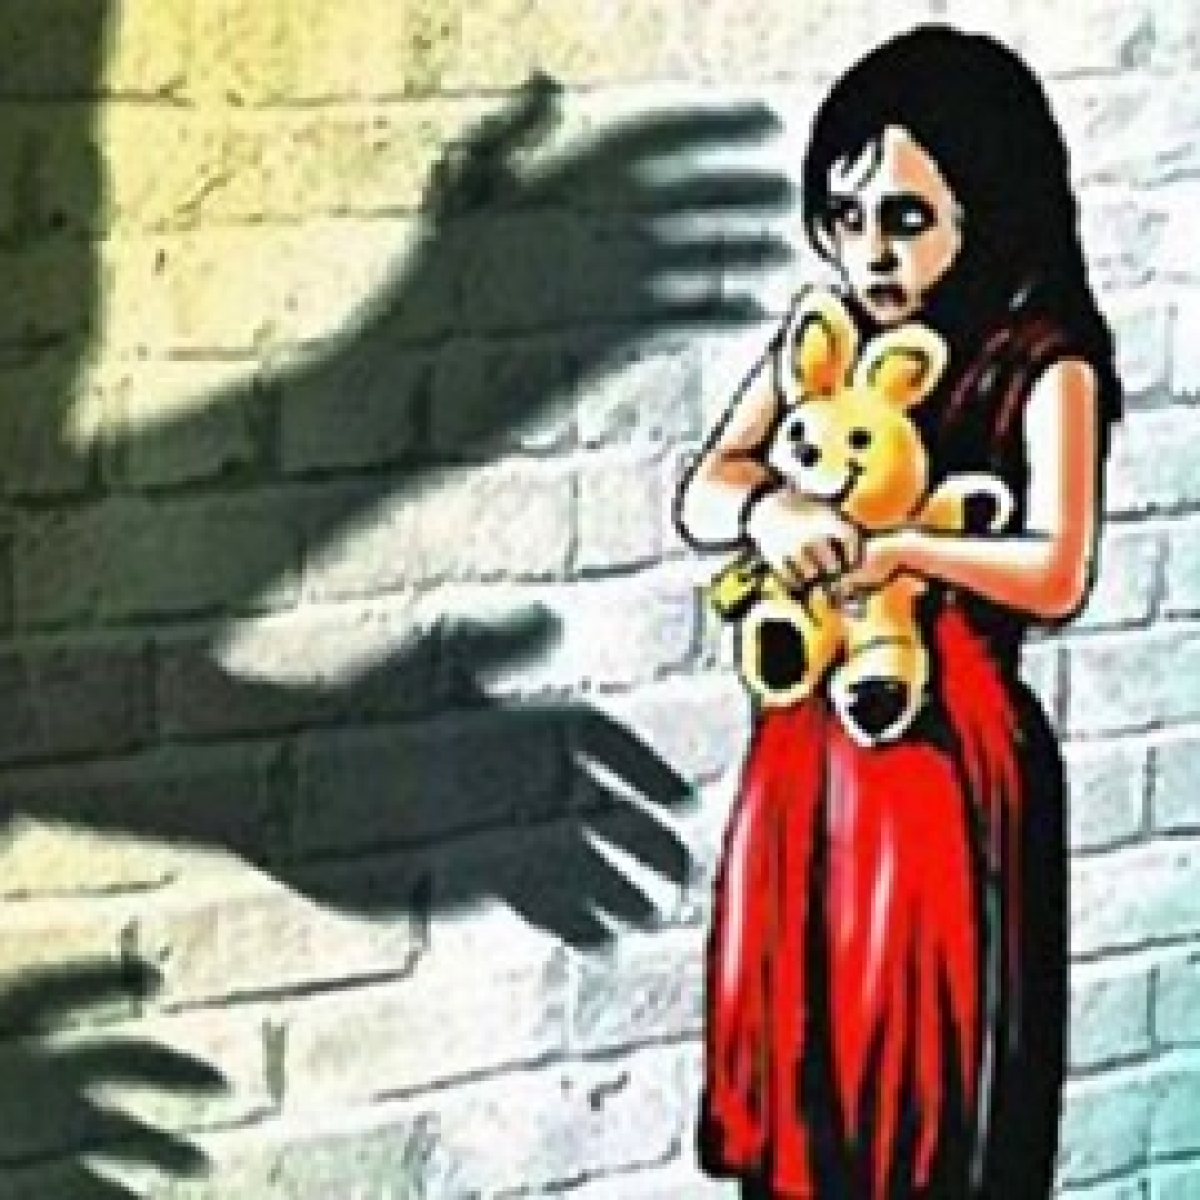 History-sheeter thrashed while trying to abduct minor girl